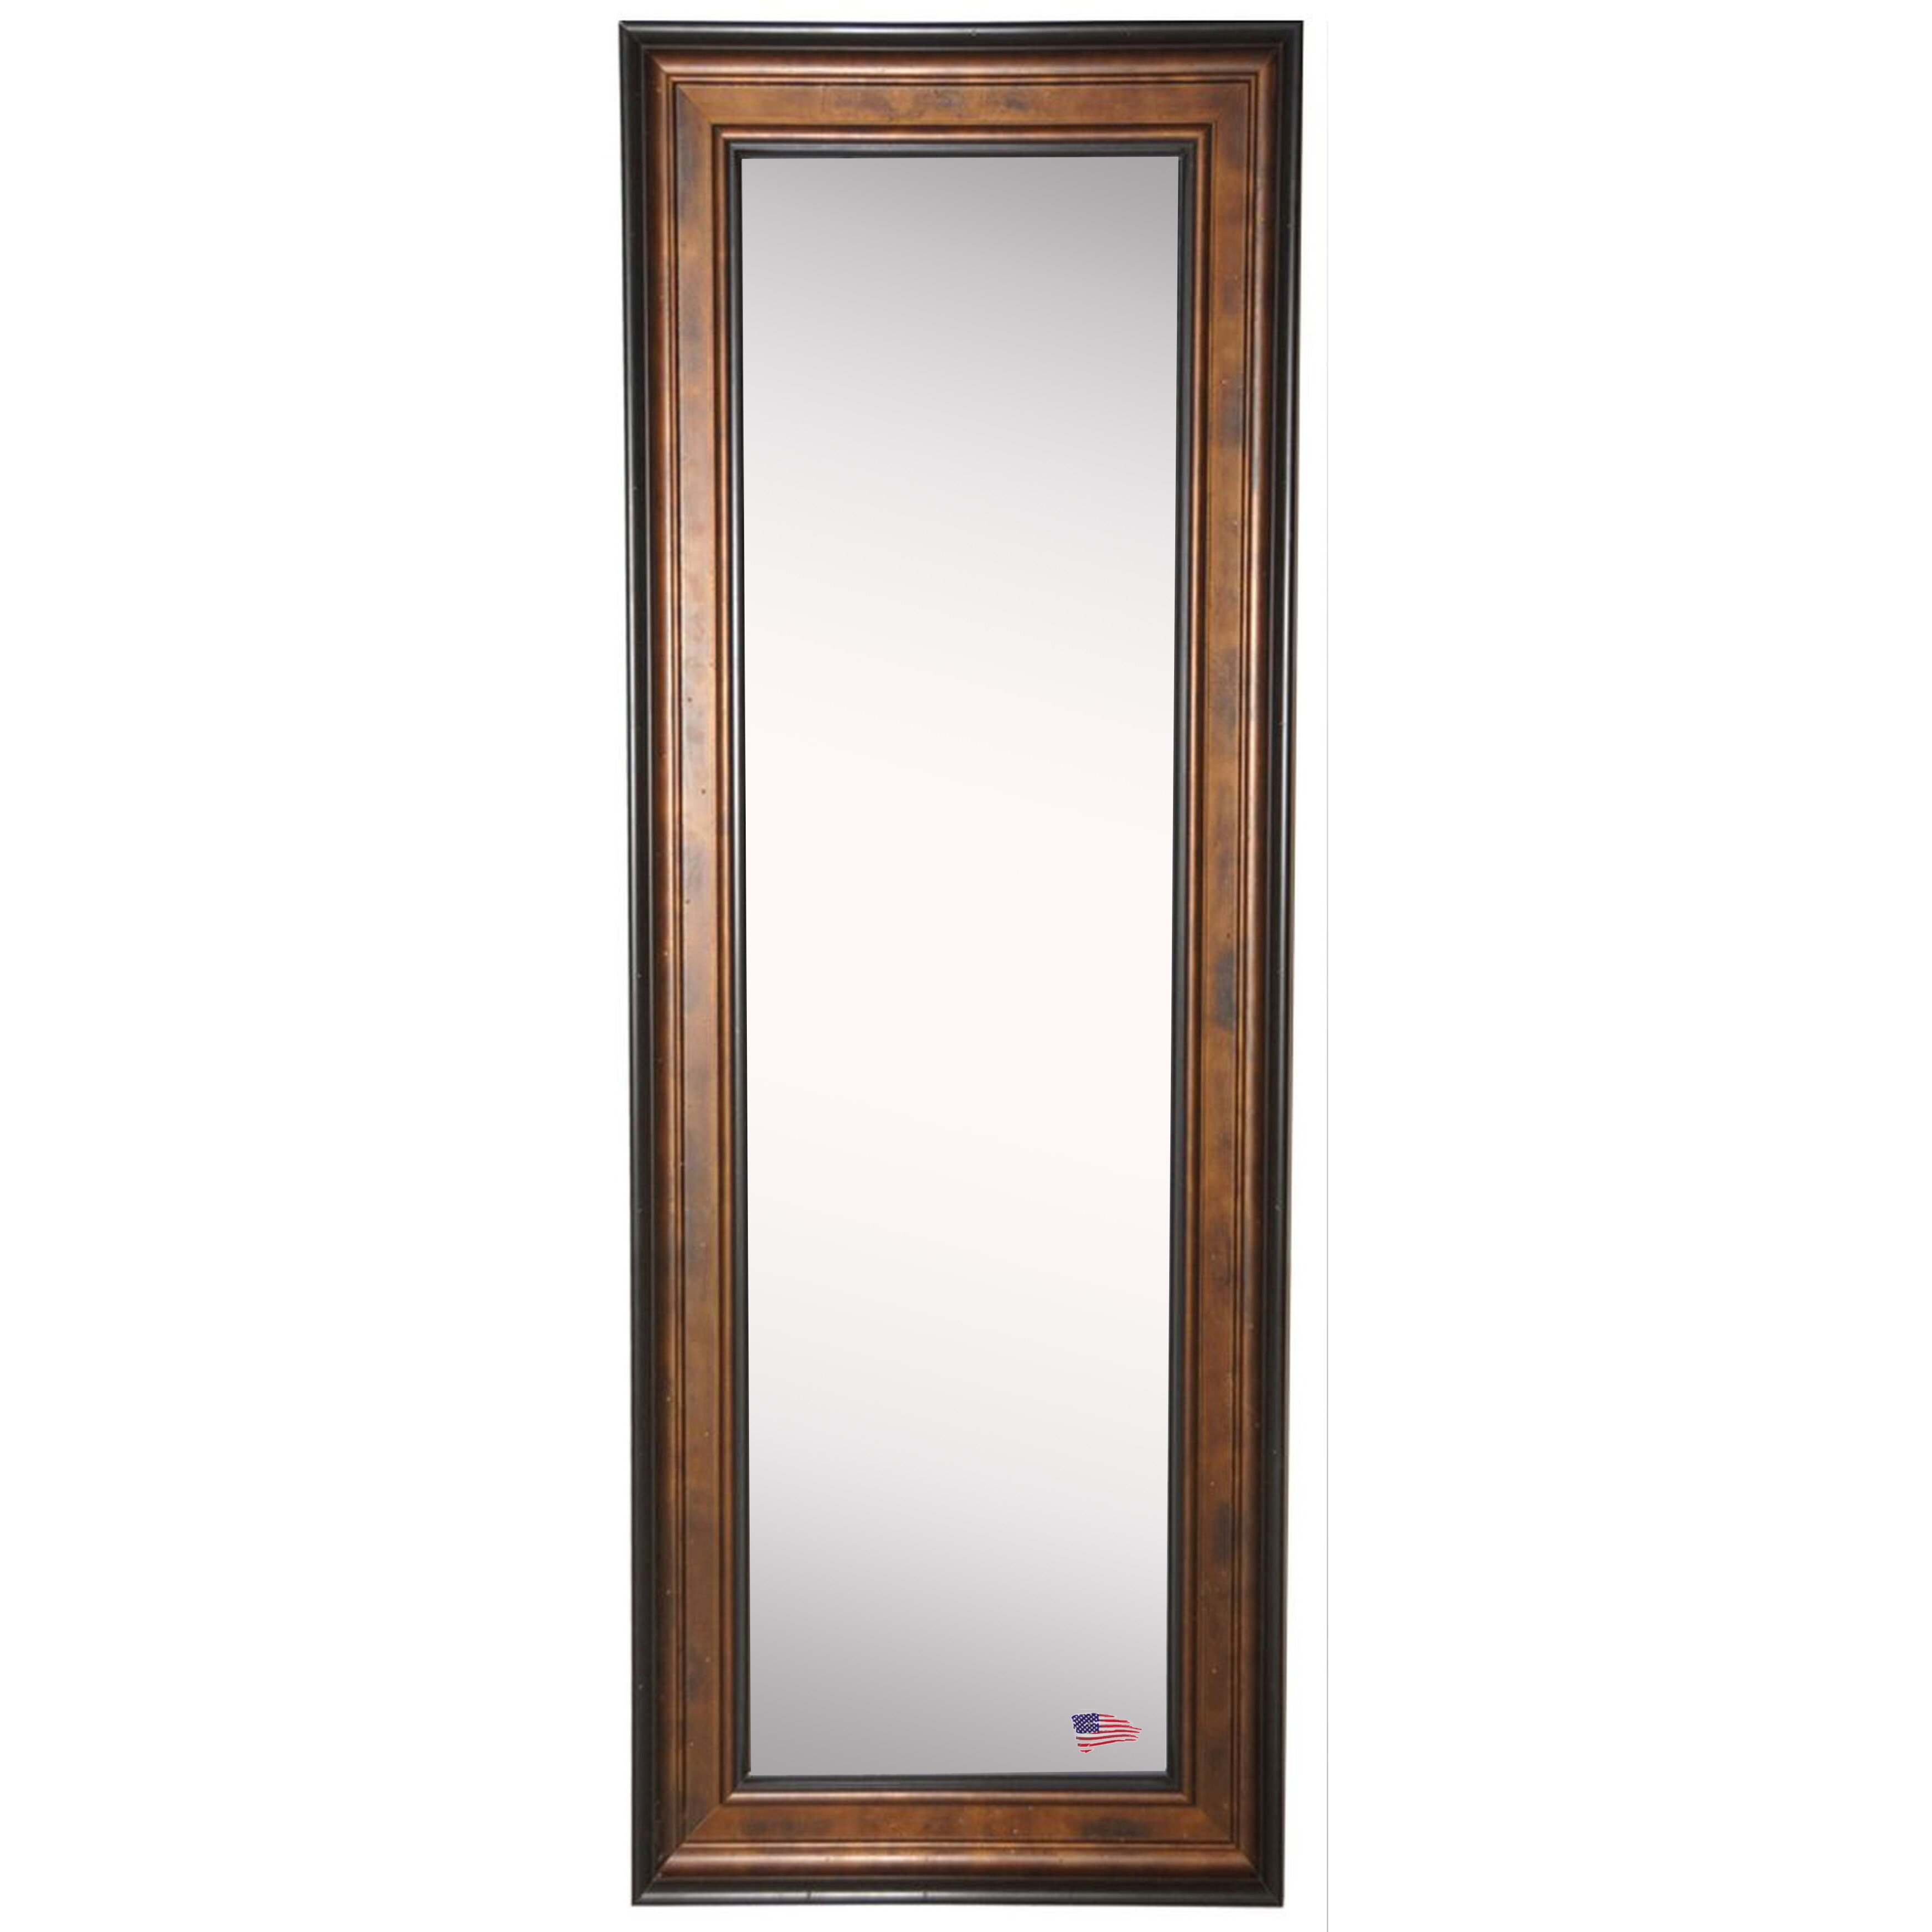 Rayne mirrors ava wooden bronze and black tall body mirror for Bronze mirror